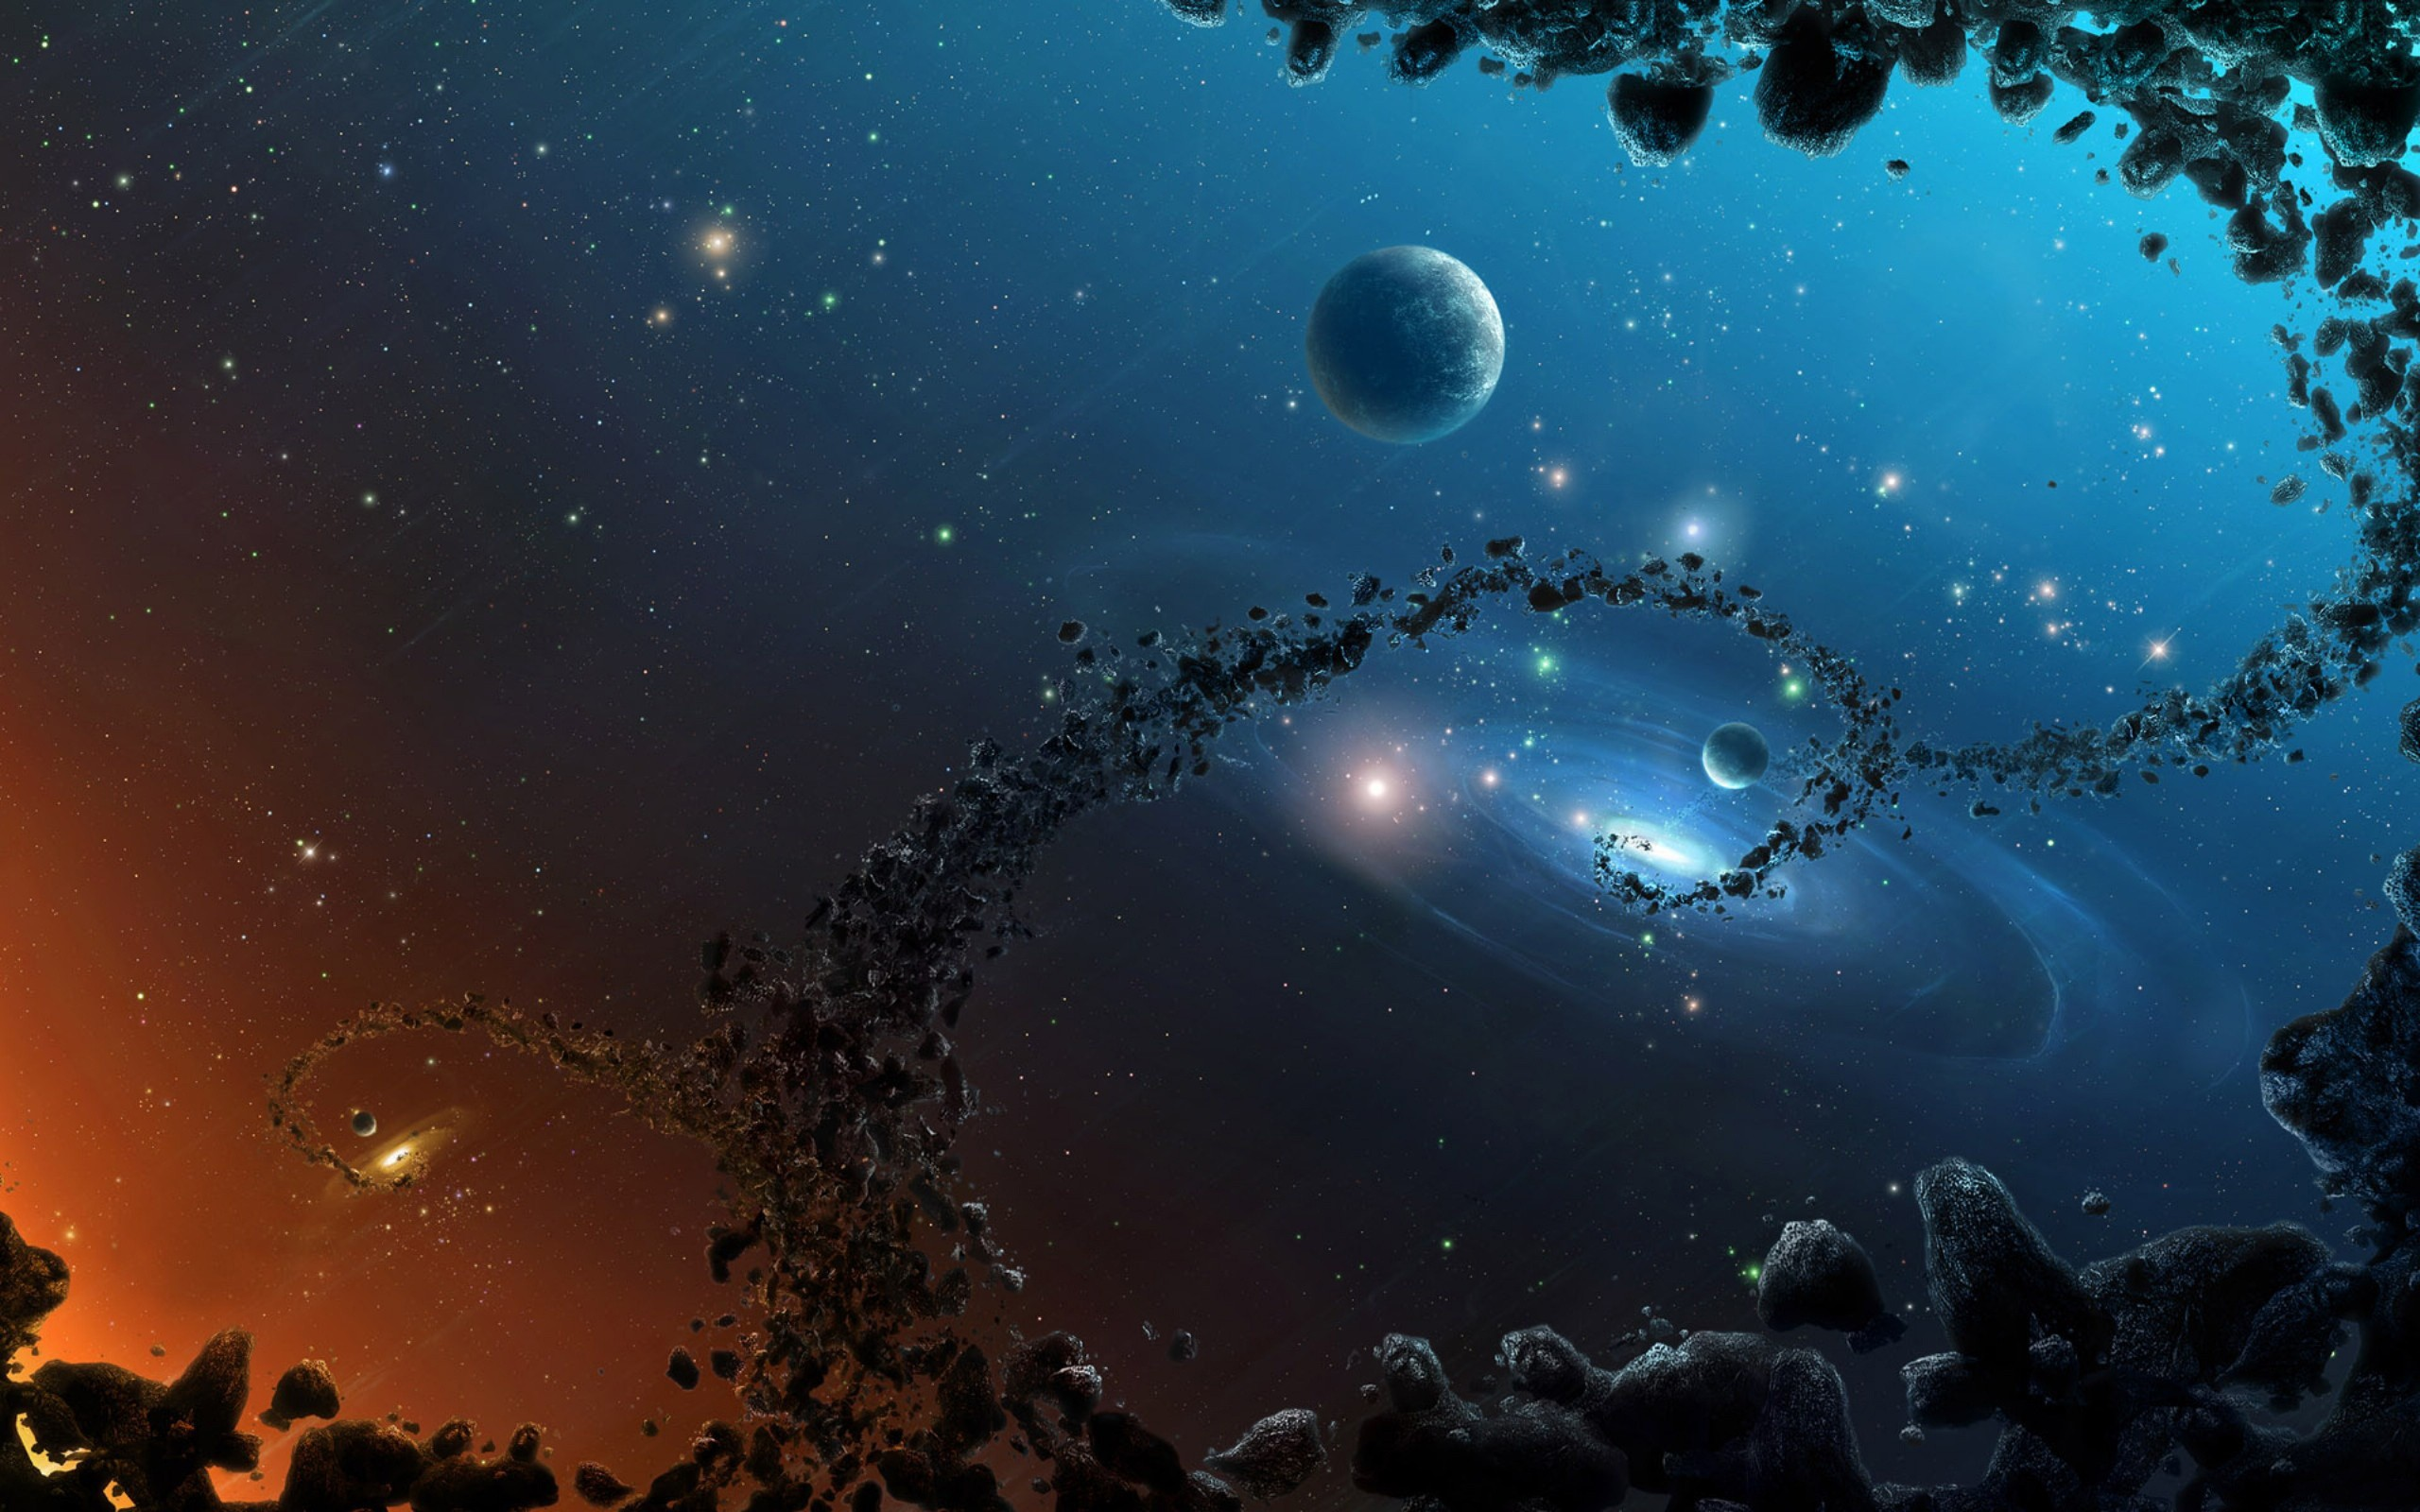 Space Wallpaper Widescreen wallpaper   1059276 2560x1600